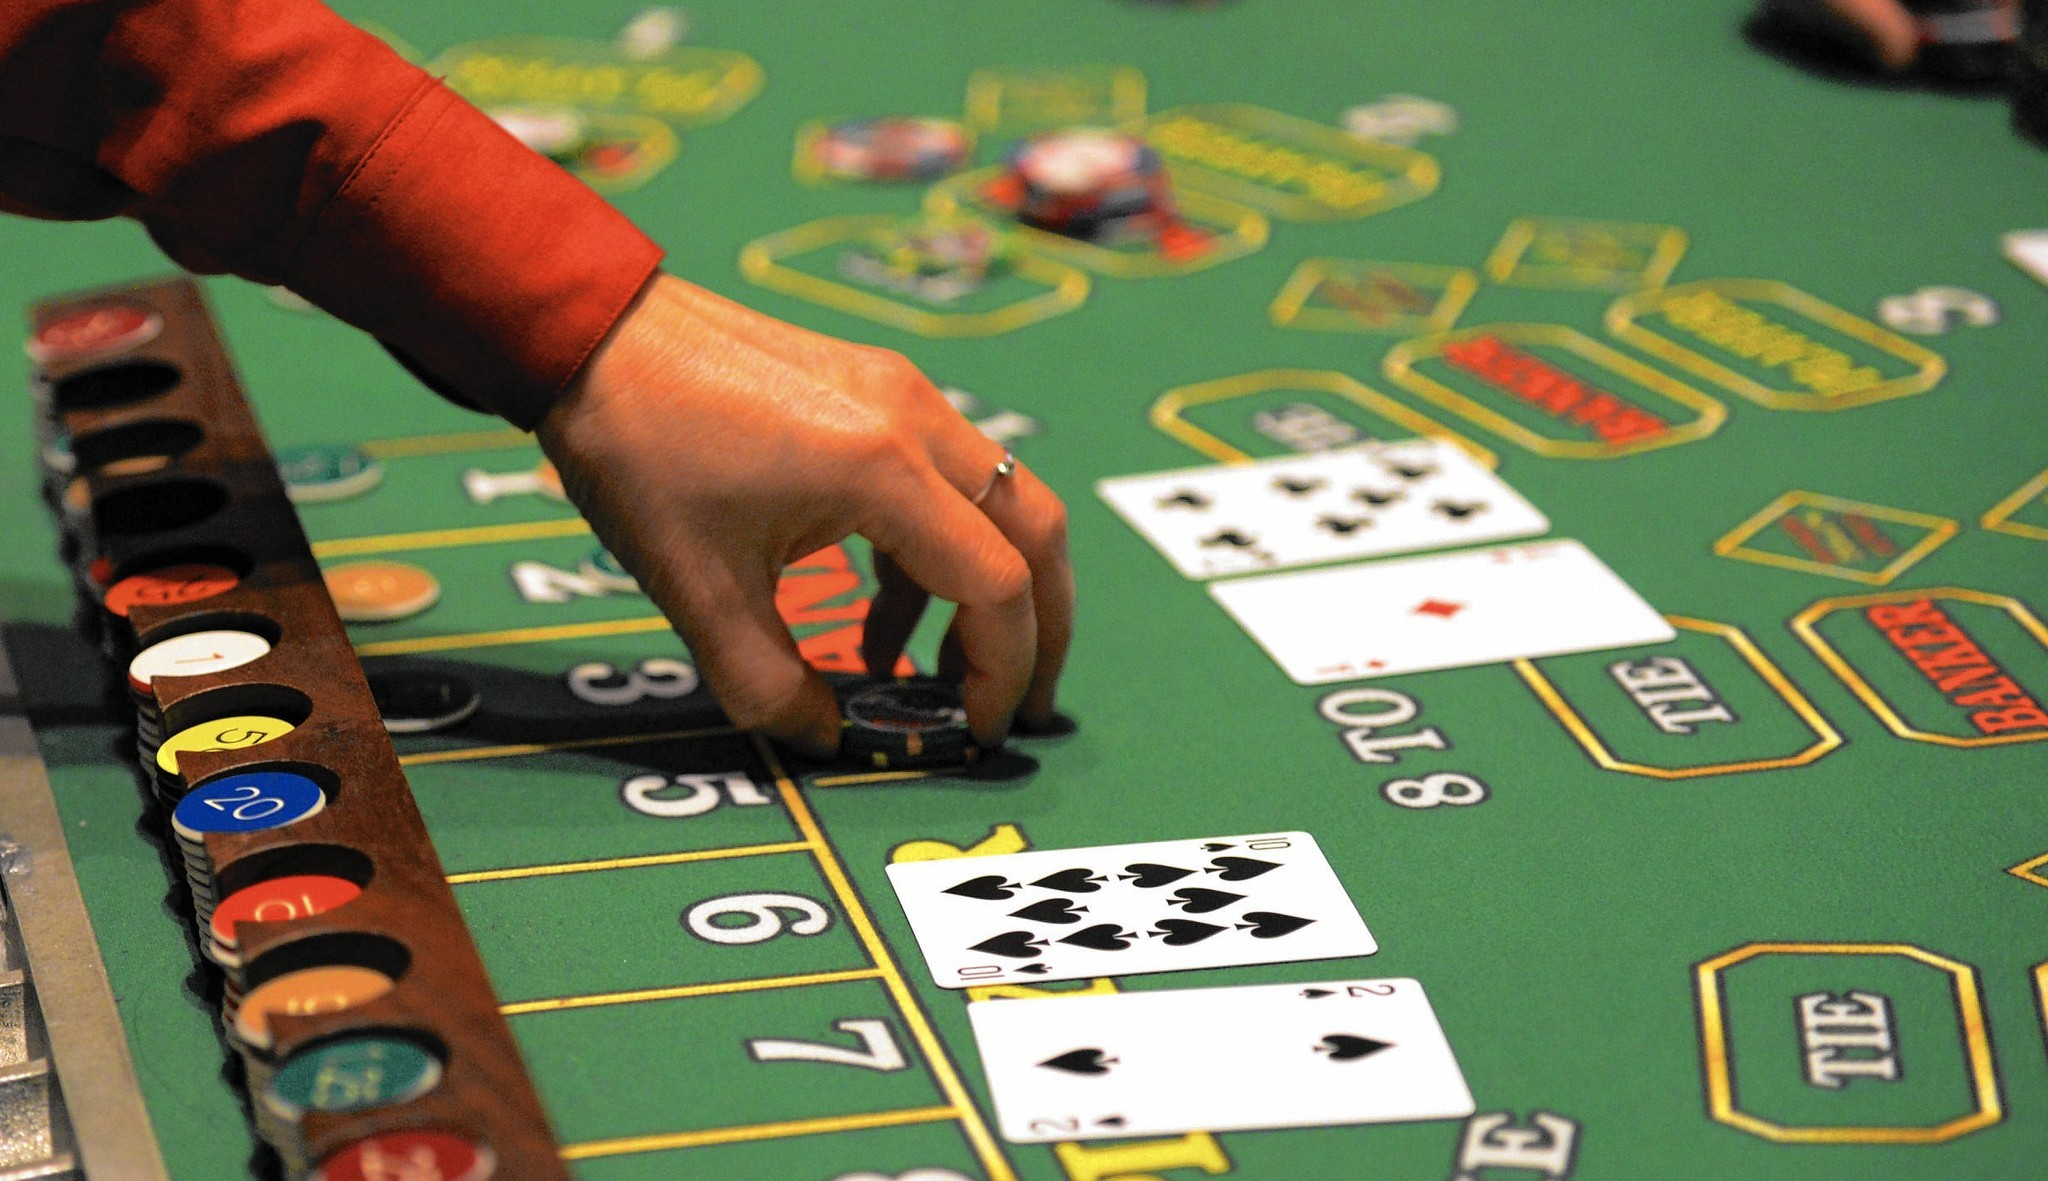 New gambling tax will hit Sands hardest - Lehigh Valley